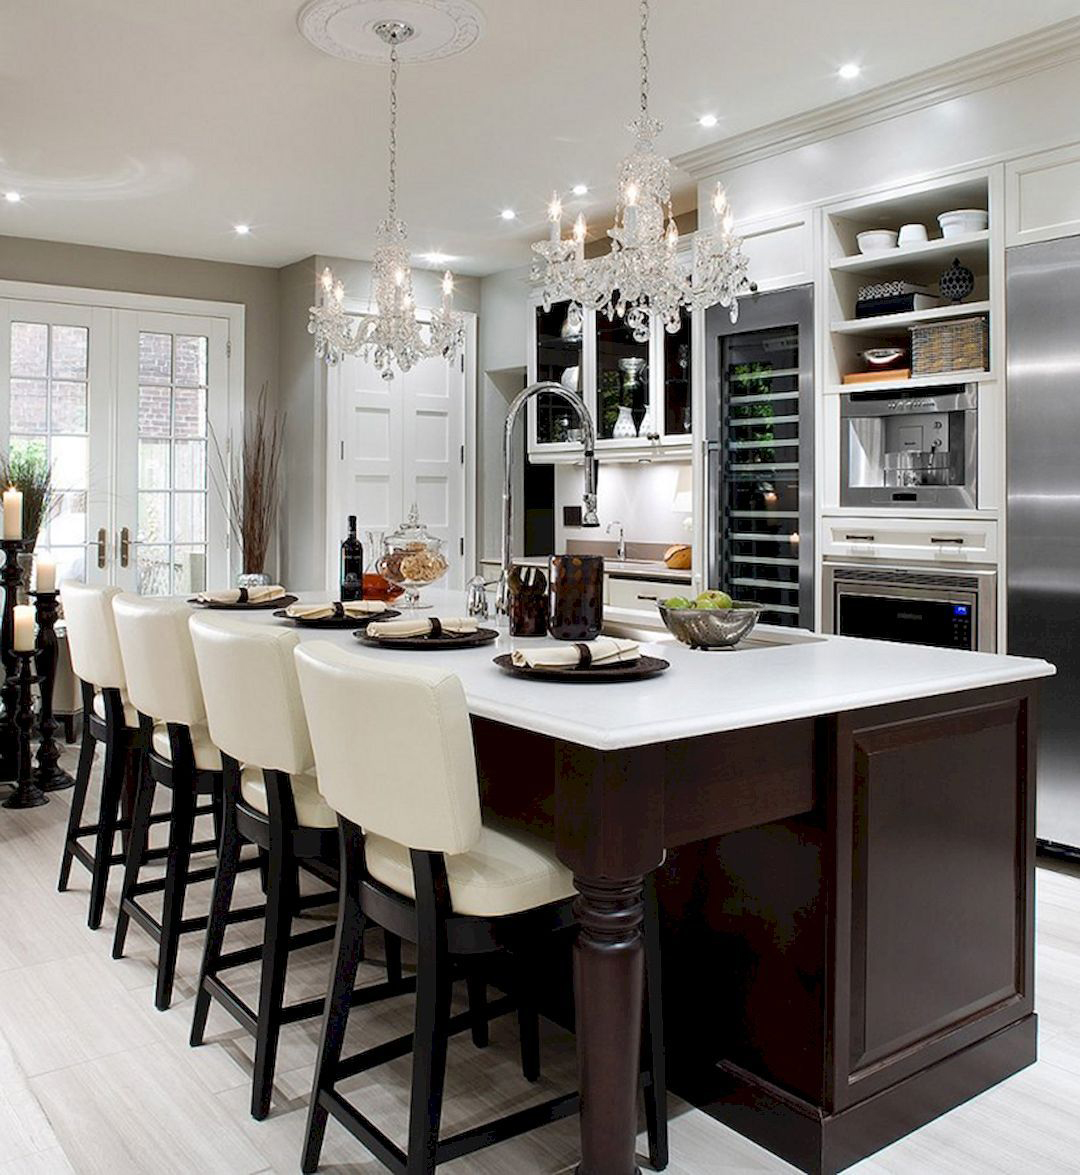 Candice Olson Designer Kitchen